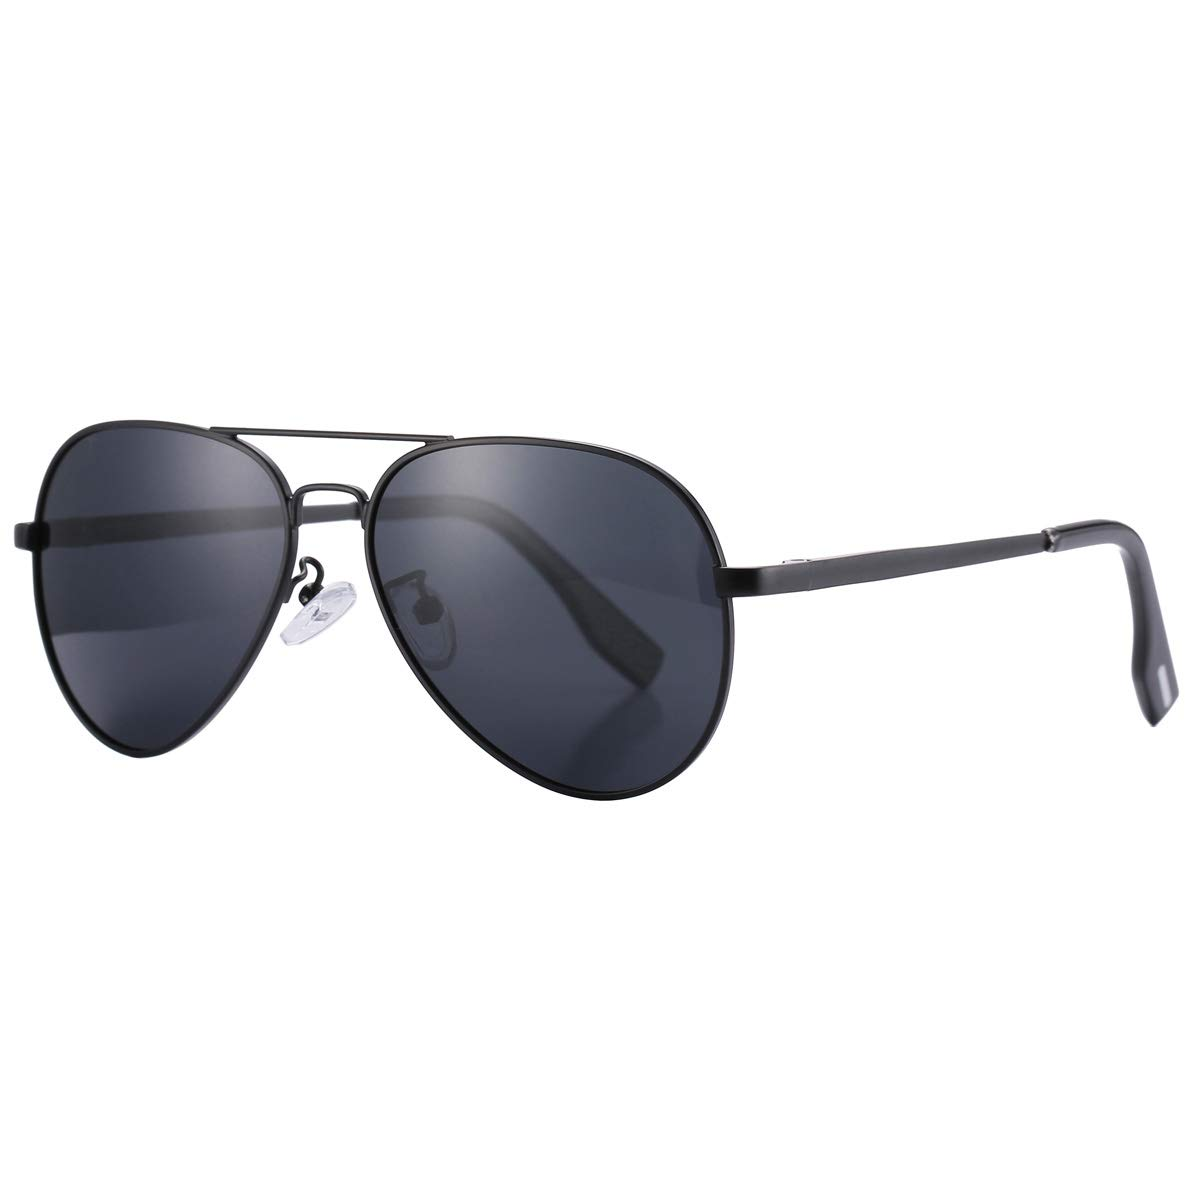 Pro Acme Small Polarized Aviator Sunglasses for Adult Small Face and Junior, 52mm (Black Frame/Black Lens - Without Logo) by Pro Acme